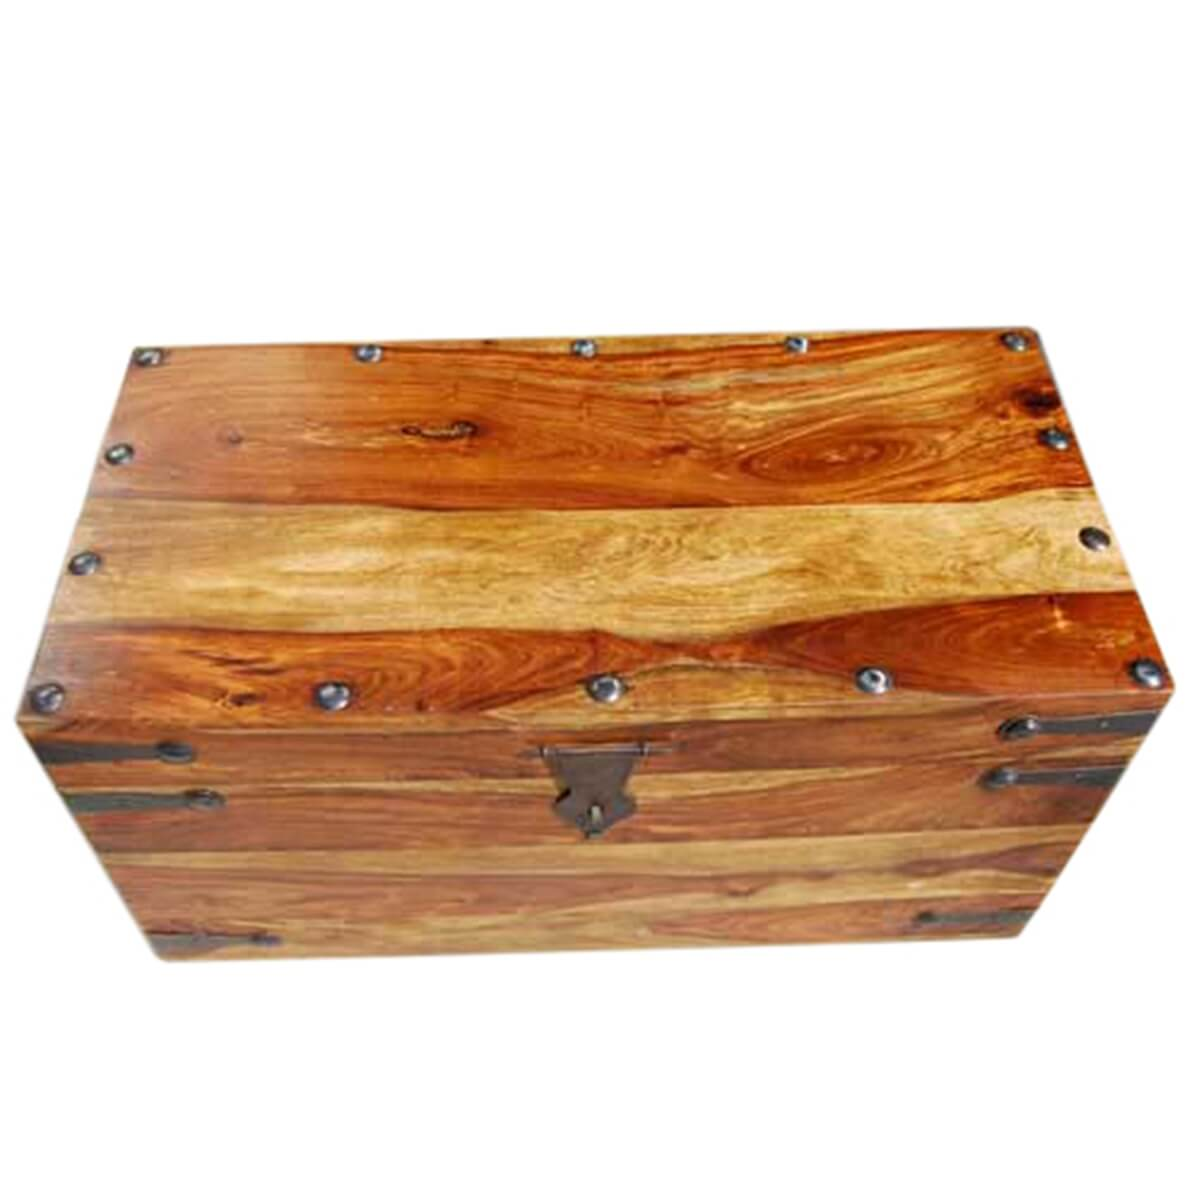 Solid Wood Dallas Trunk Coffee Table With Wrought Iron